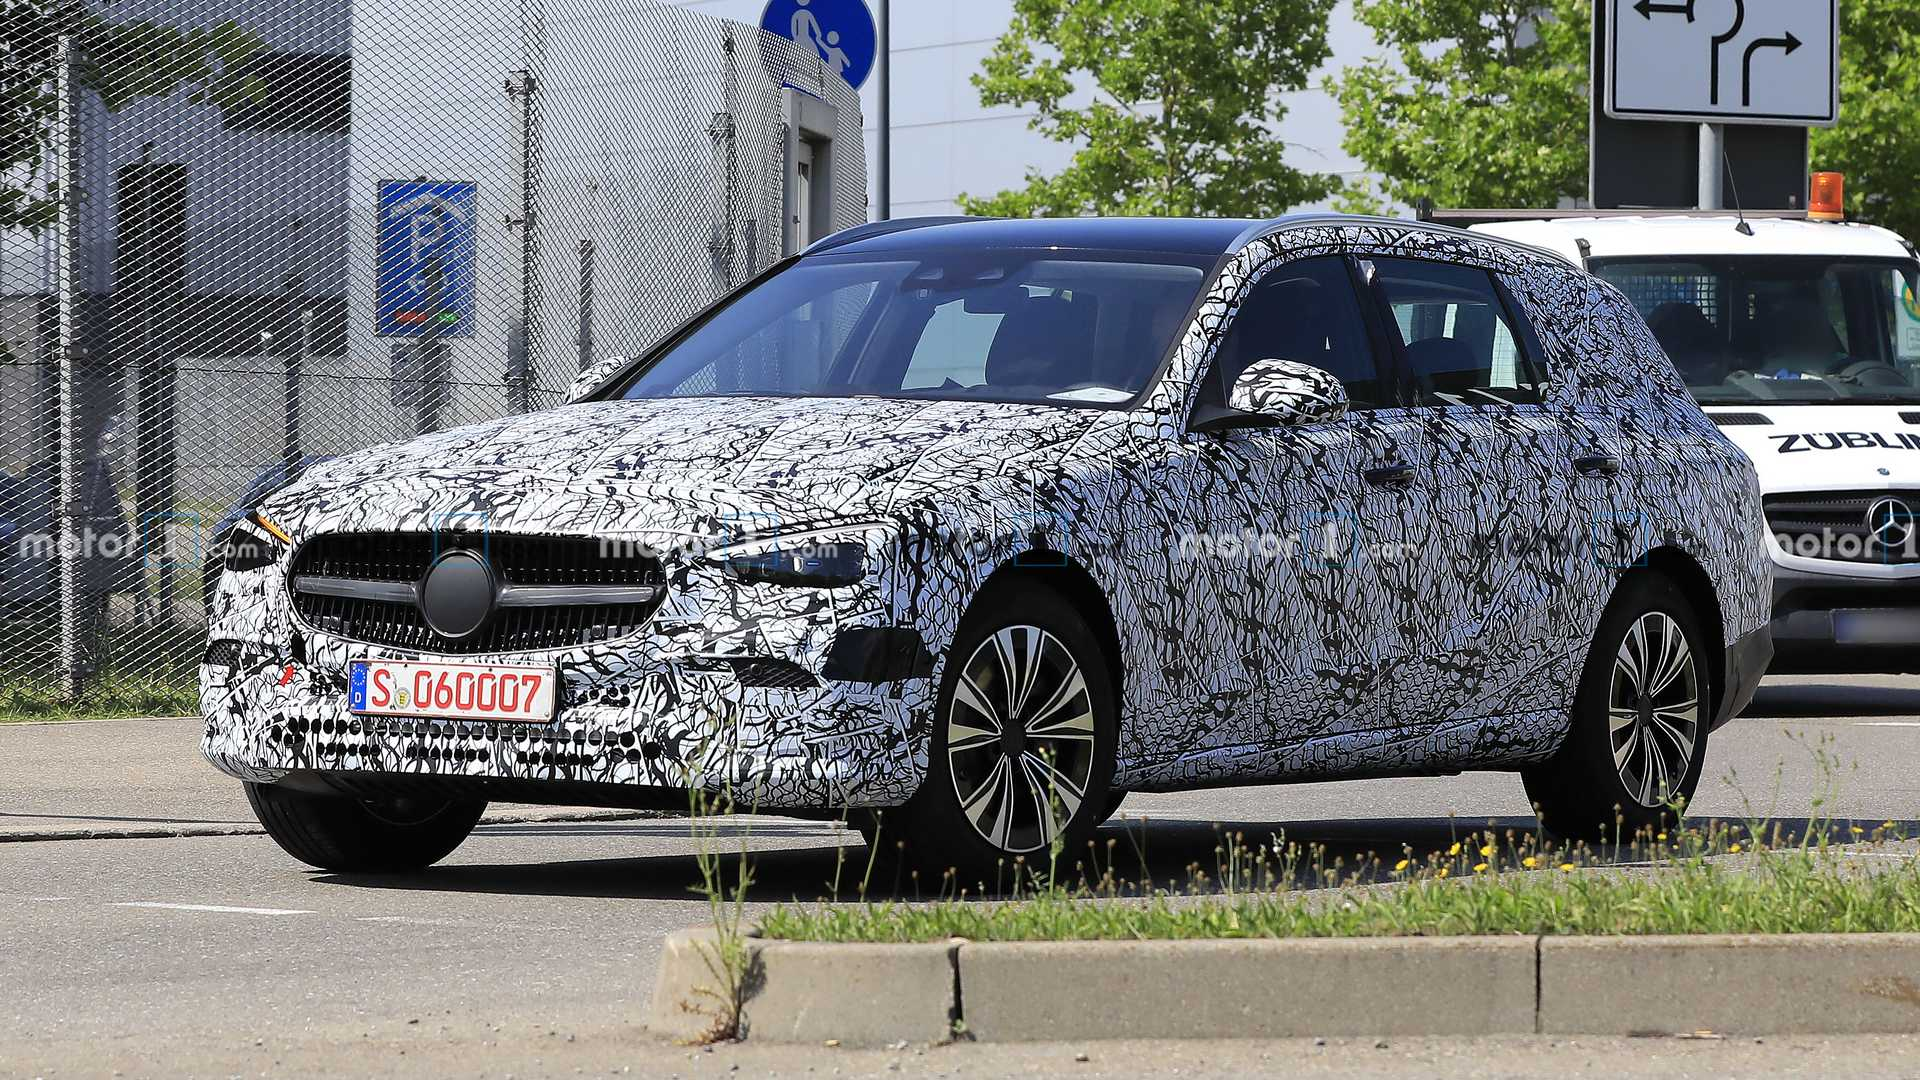 2021-mercedes-c-class-estate-spy-photo-f